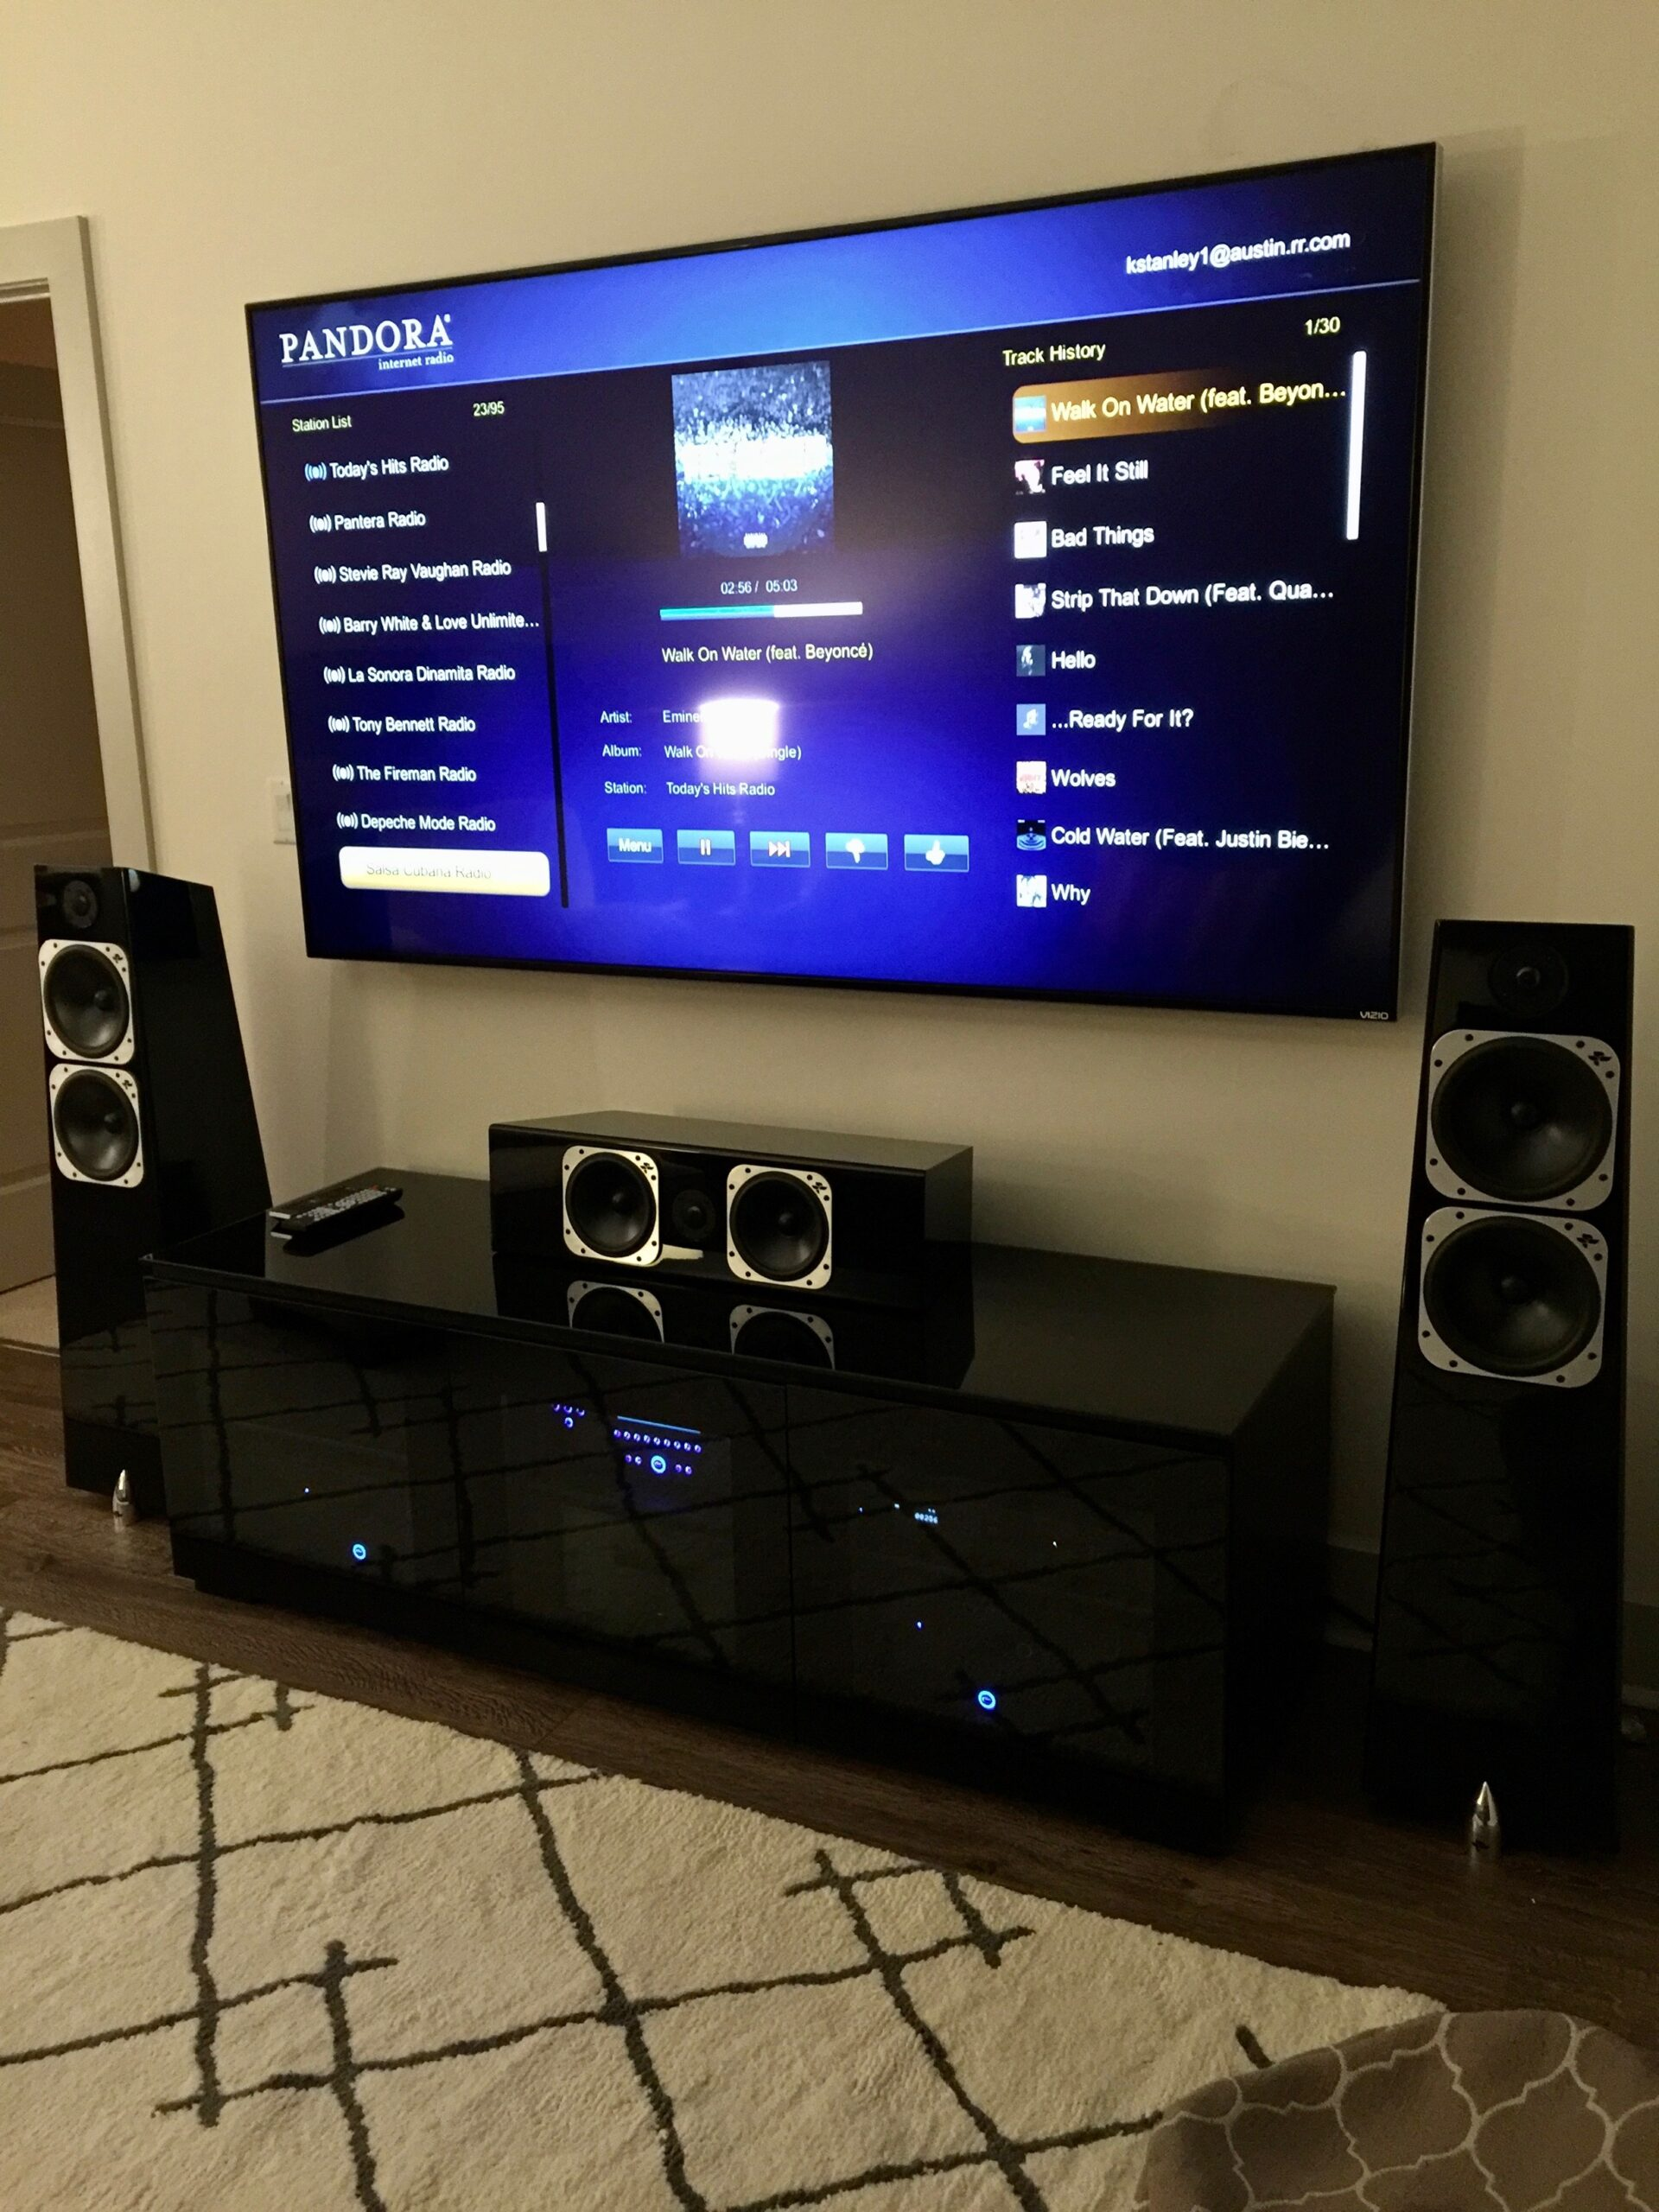 Home media room loudspeakers sound system and Smart TV wall mount